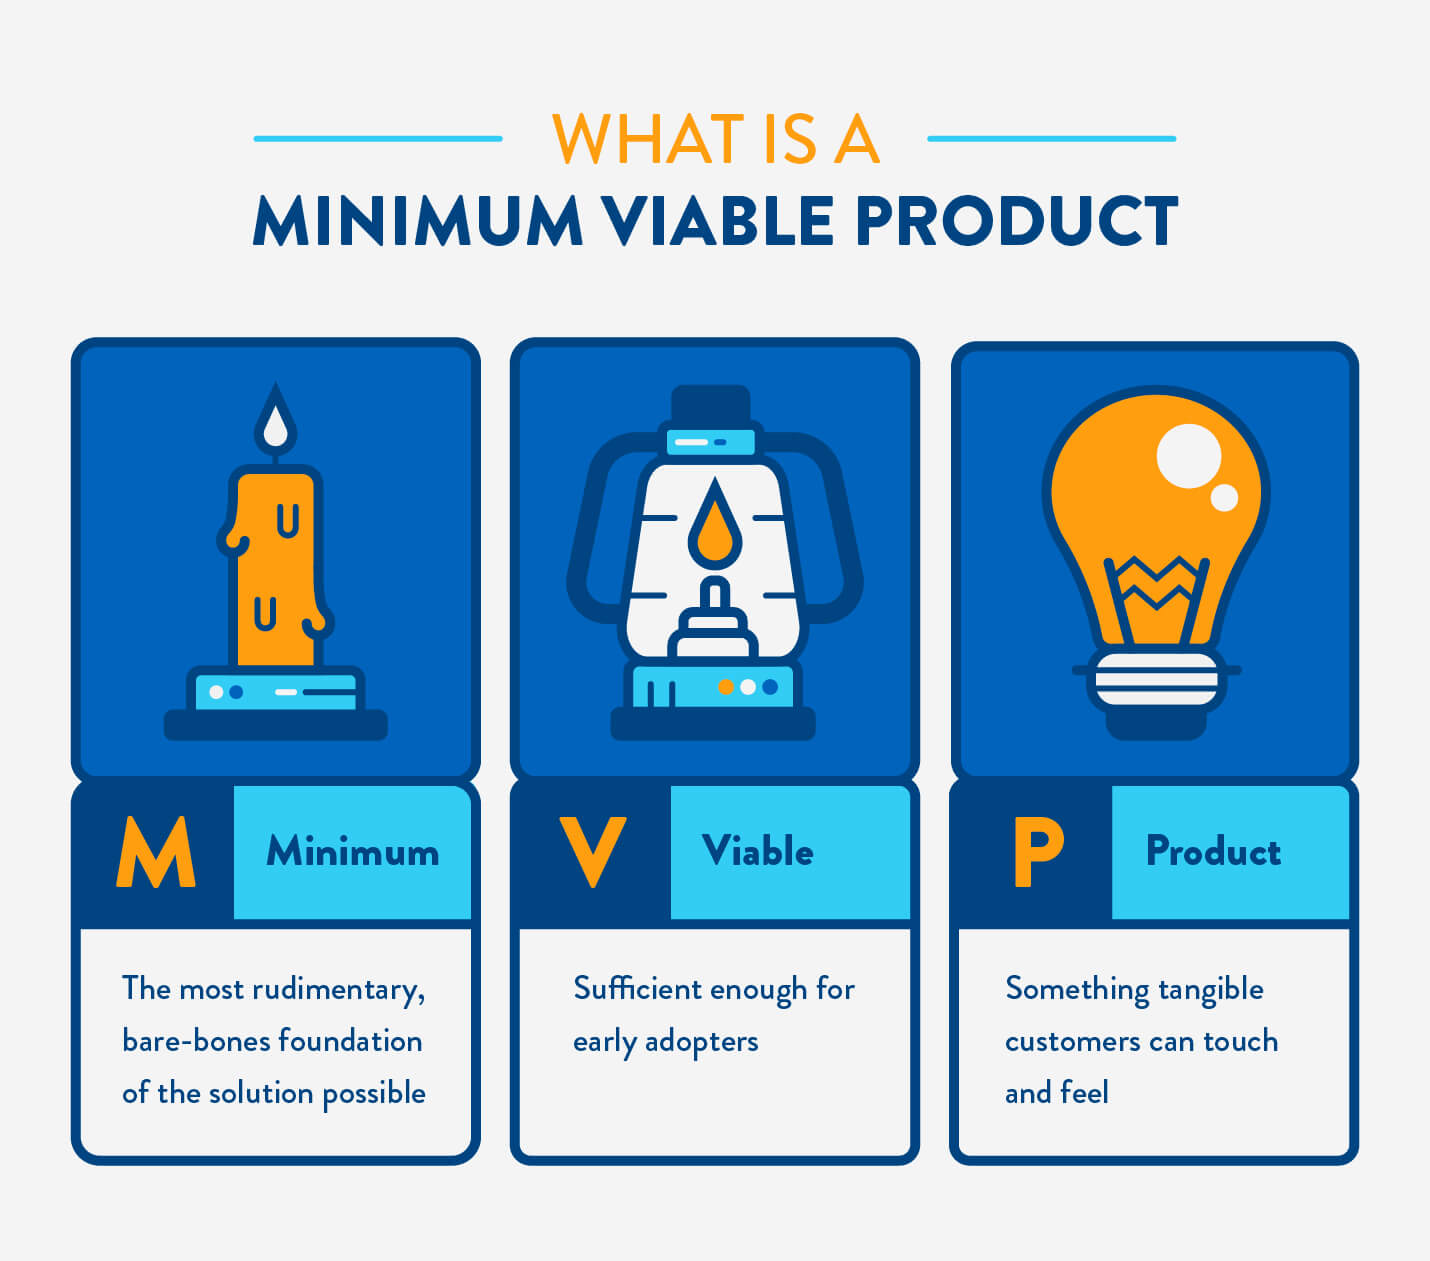 what-is-a-minimum-viable-product_oct19.jpg